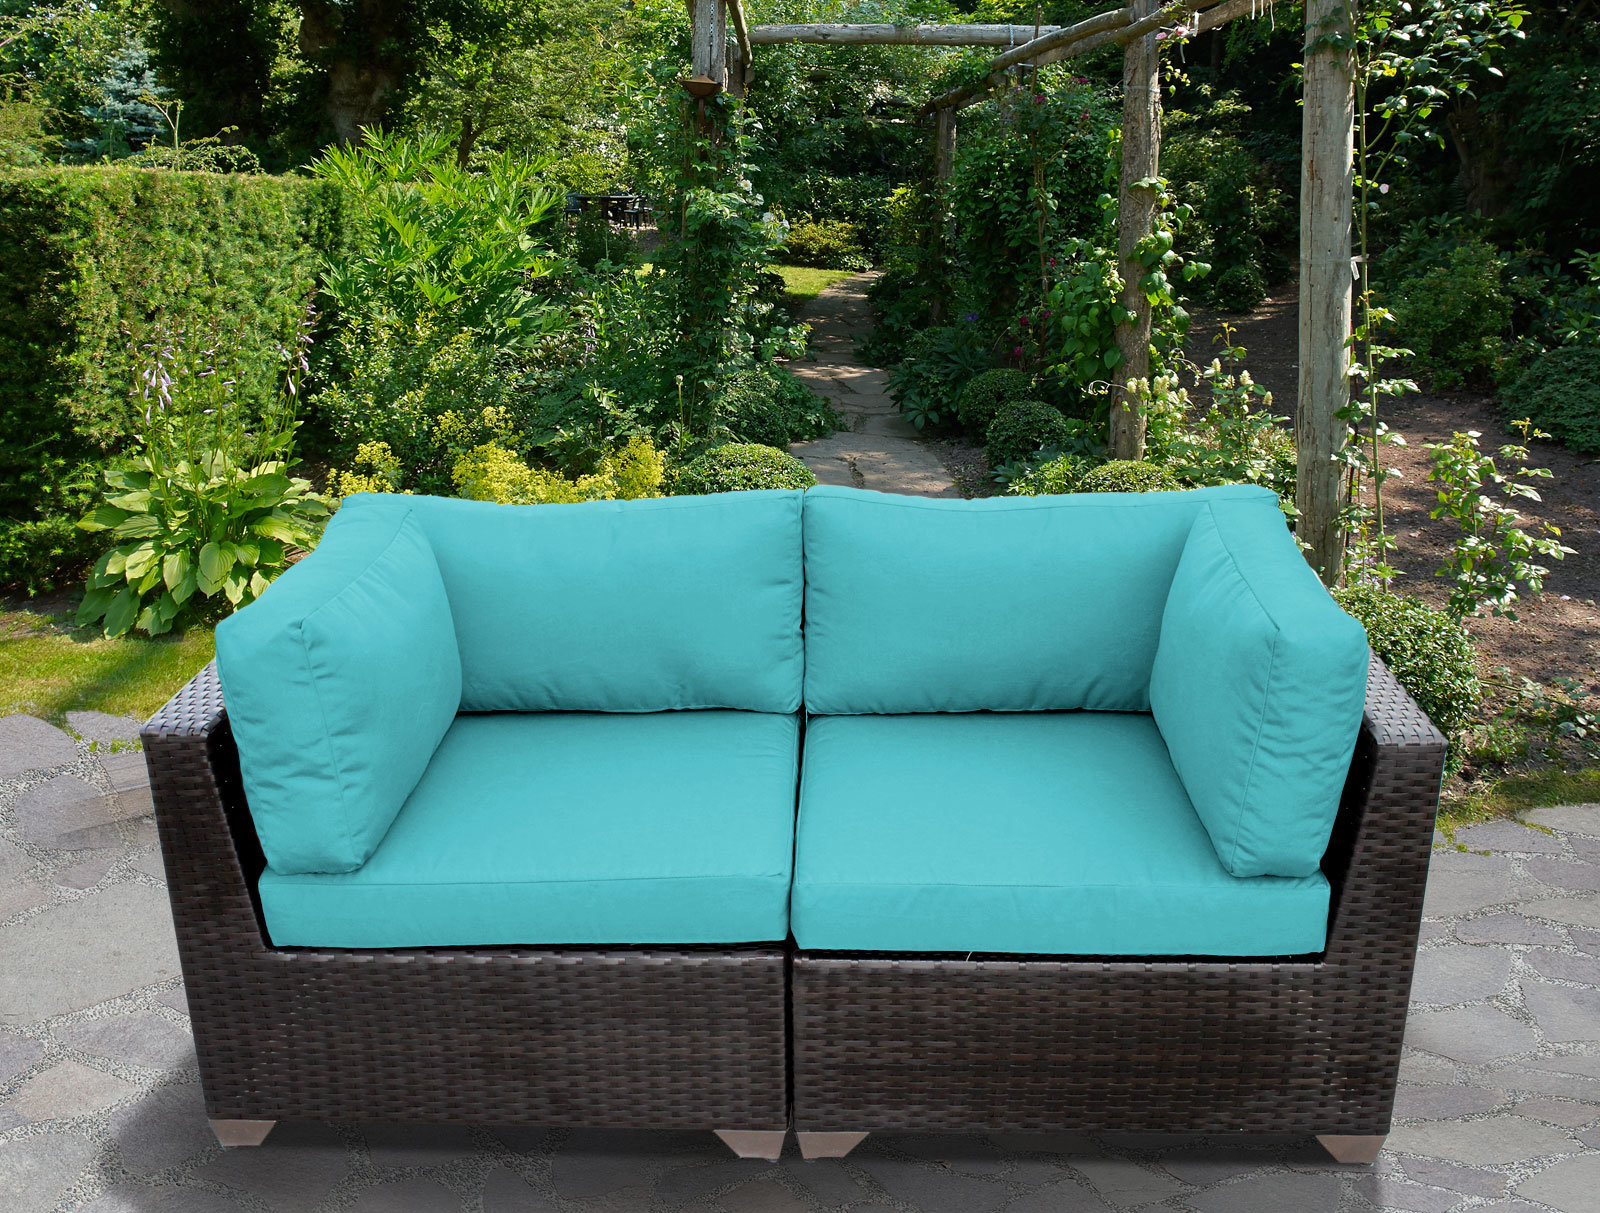 Well Liked Mosca Patio Loveseats With Cushions Regarding Camak Patio Loveseat With Cushions (View 20 of 20)